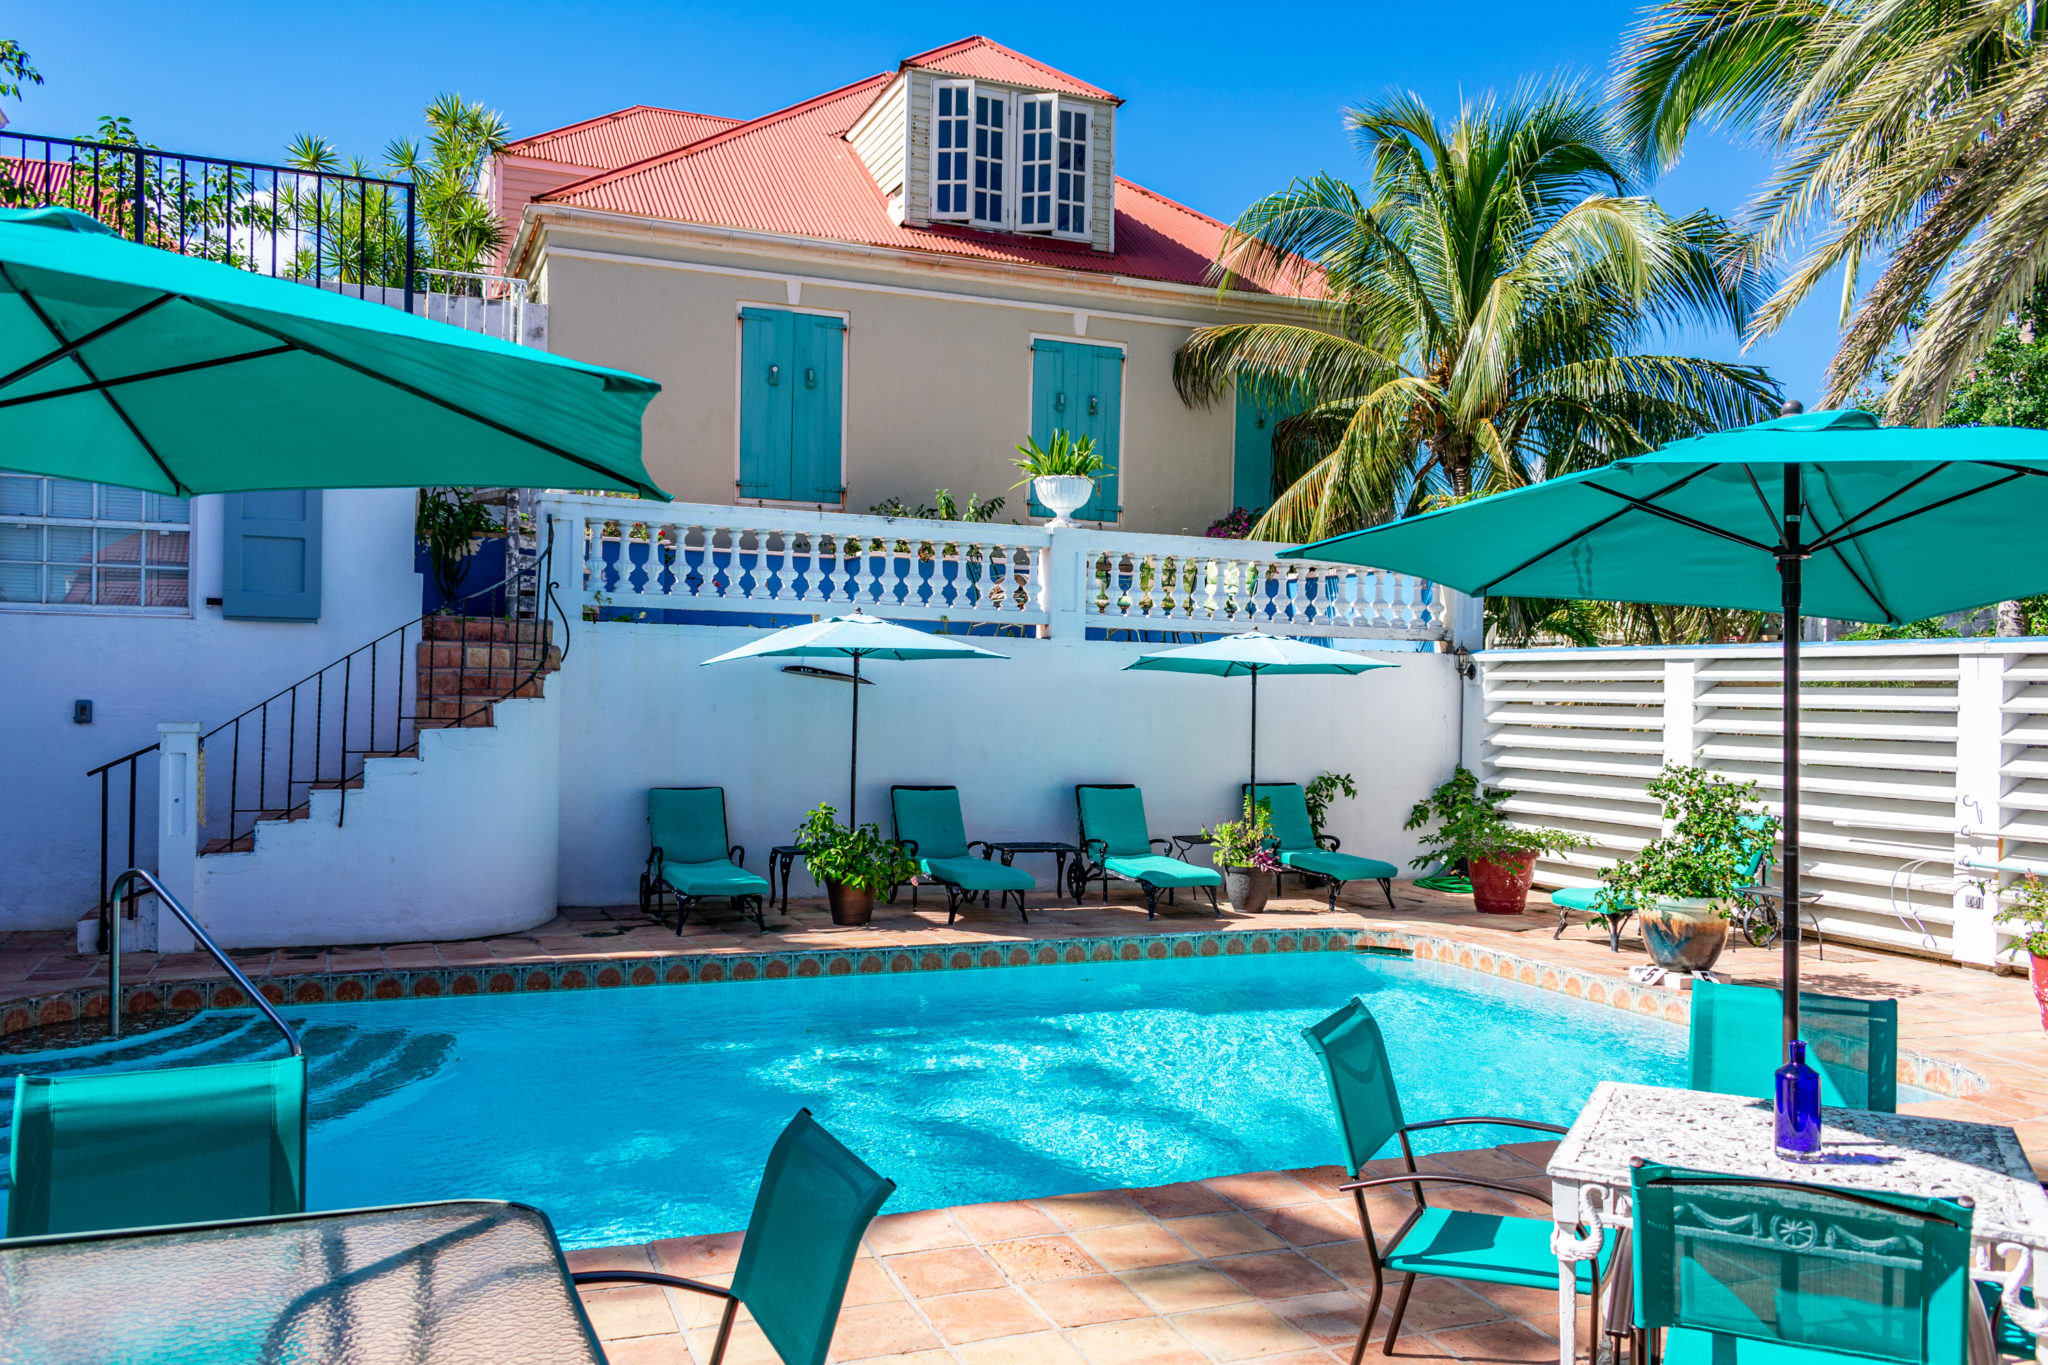 Sugar Apple Bed and Breakfast